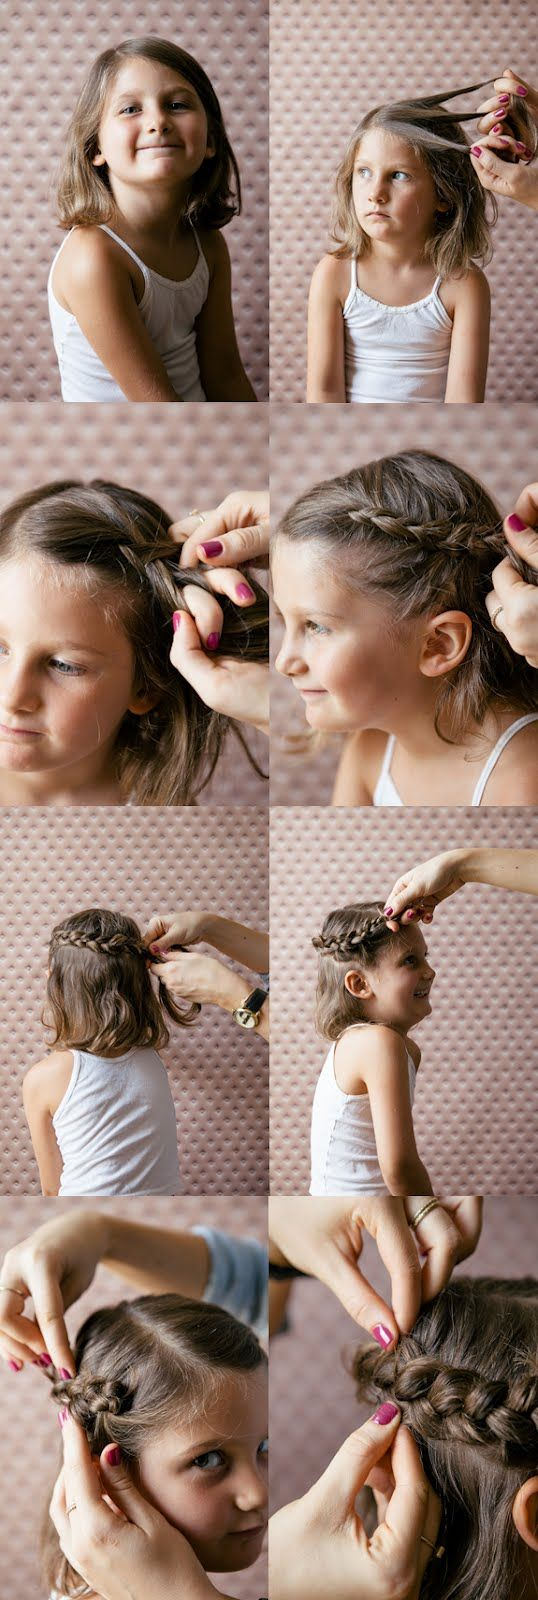 A CUP OF JO: Motherhood Mondays: Princess crown braid: Cup, Little Girls, Crown Braids, Princess Crowns, Motherhood Mondays, Girl Hairstyles, Hair Style